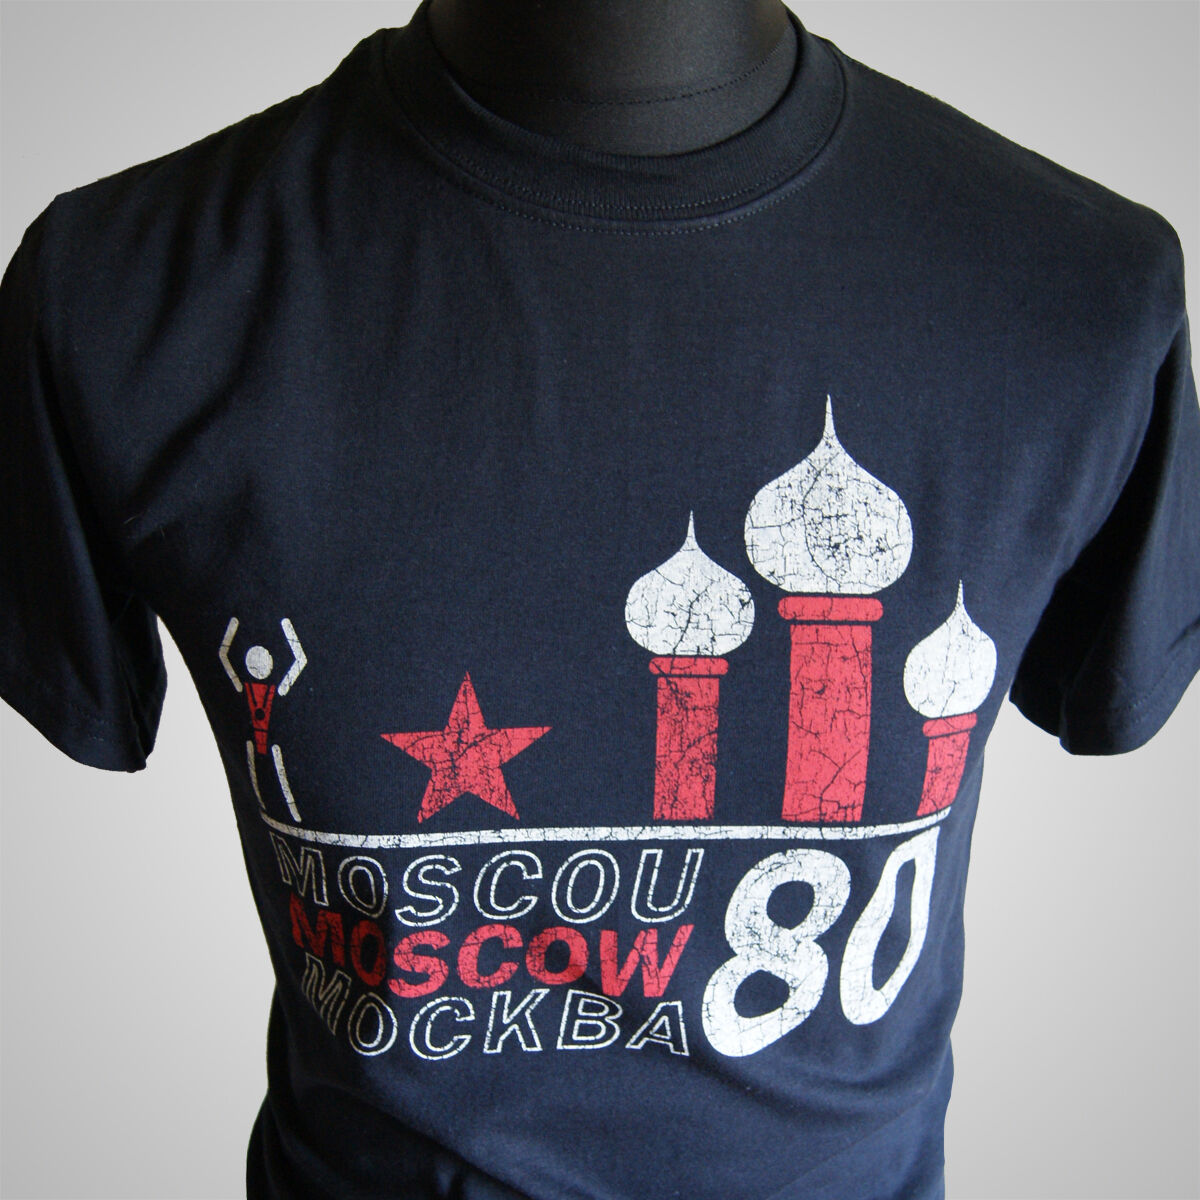 Moscow 1980 T-Shirt Olympic games Moskva Russia CCCP T shirt